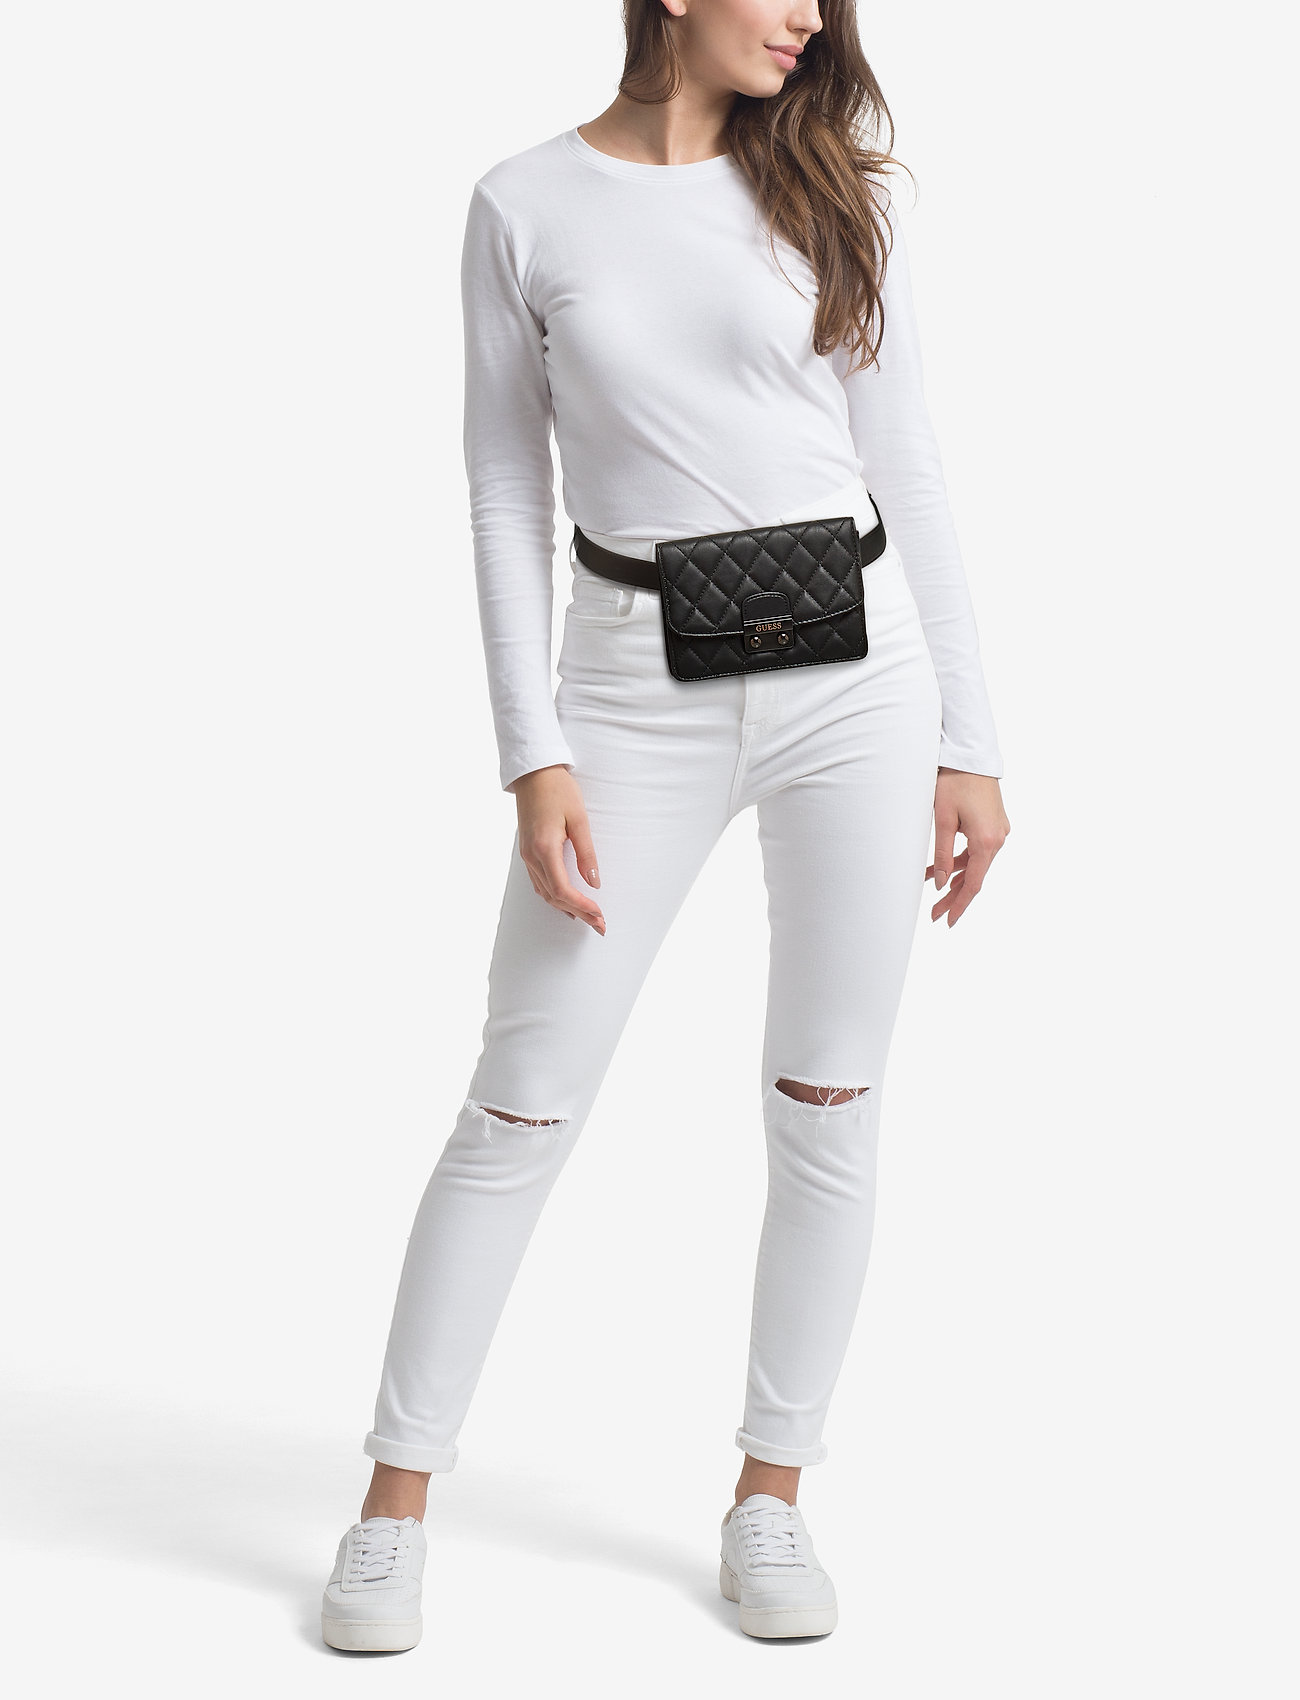 GUESS Jeans ECO LEATHER BELT WITH POUCH - JET BLACK A996